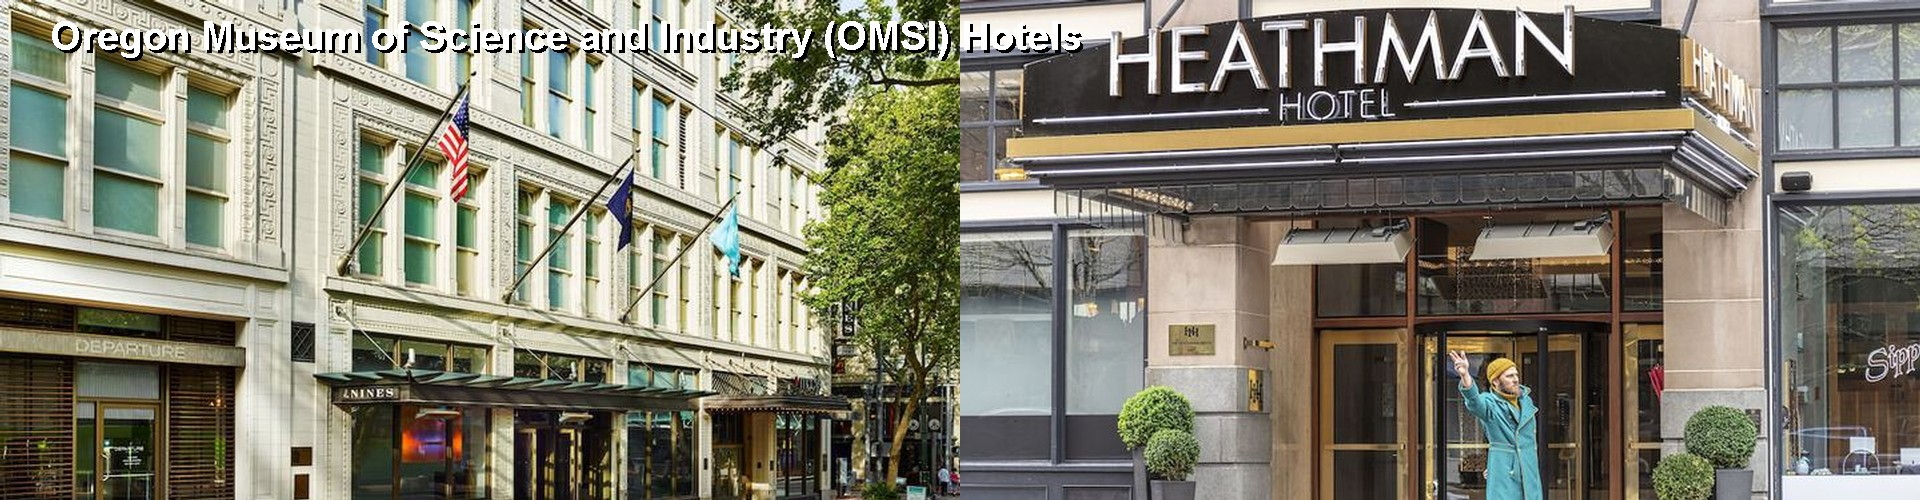 5 Best Hotels near Oregon Museum of Science and Industry (OMSI)